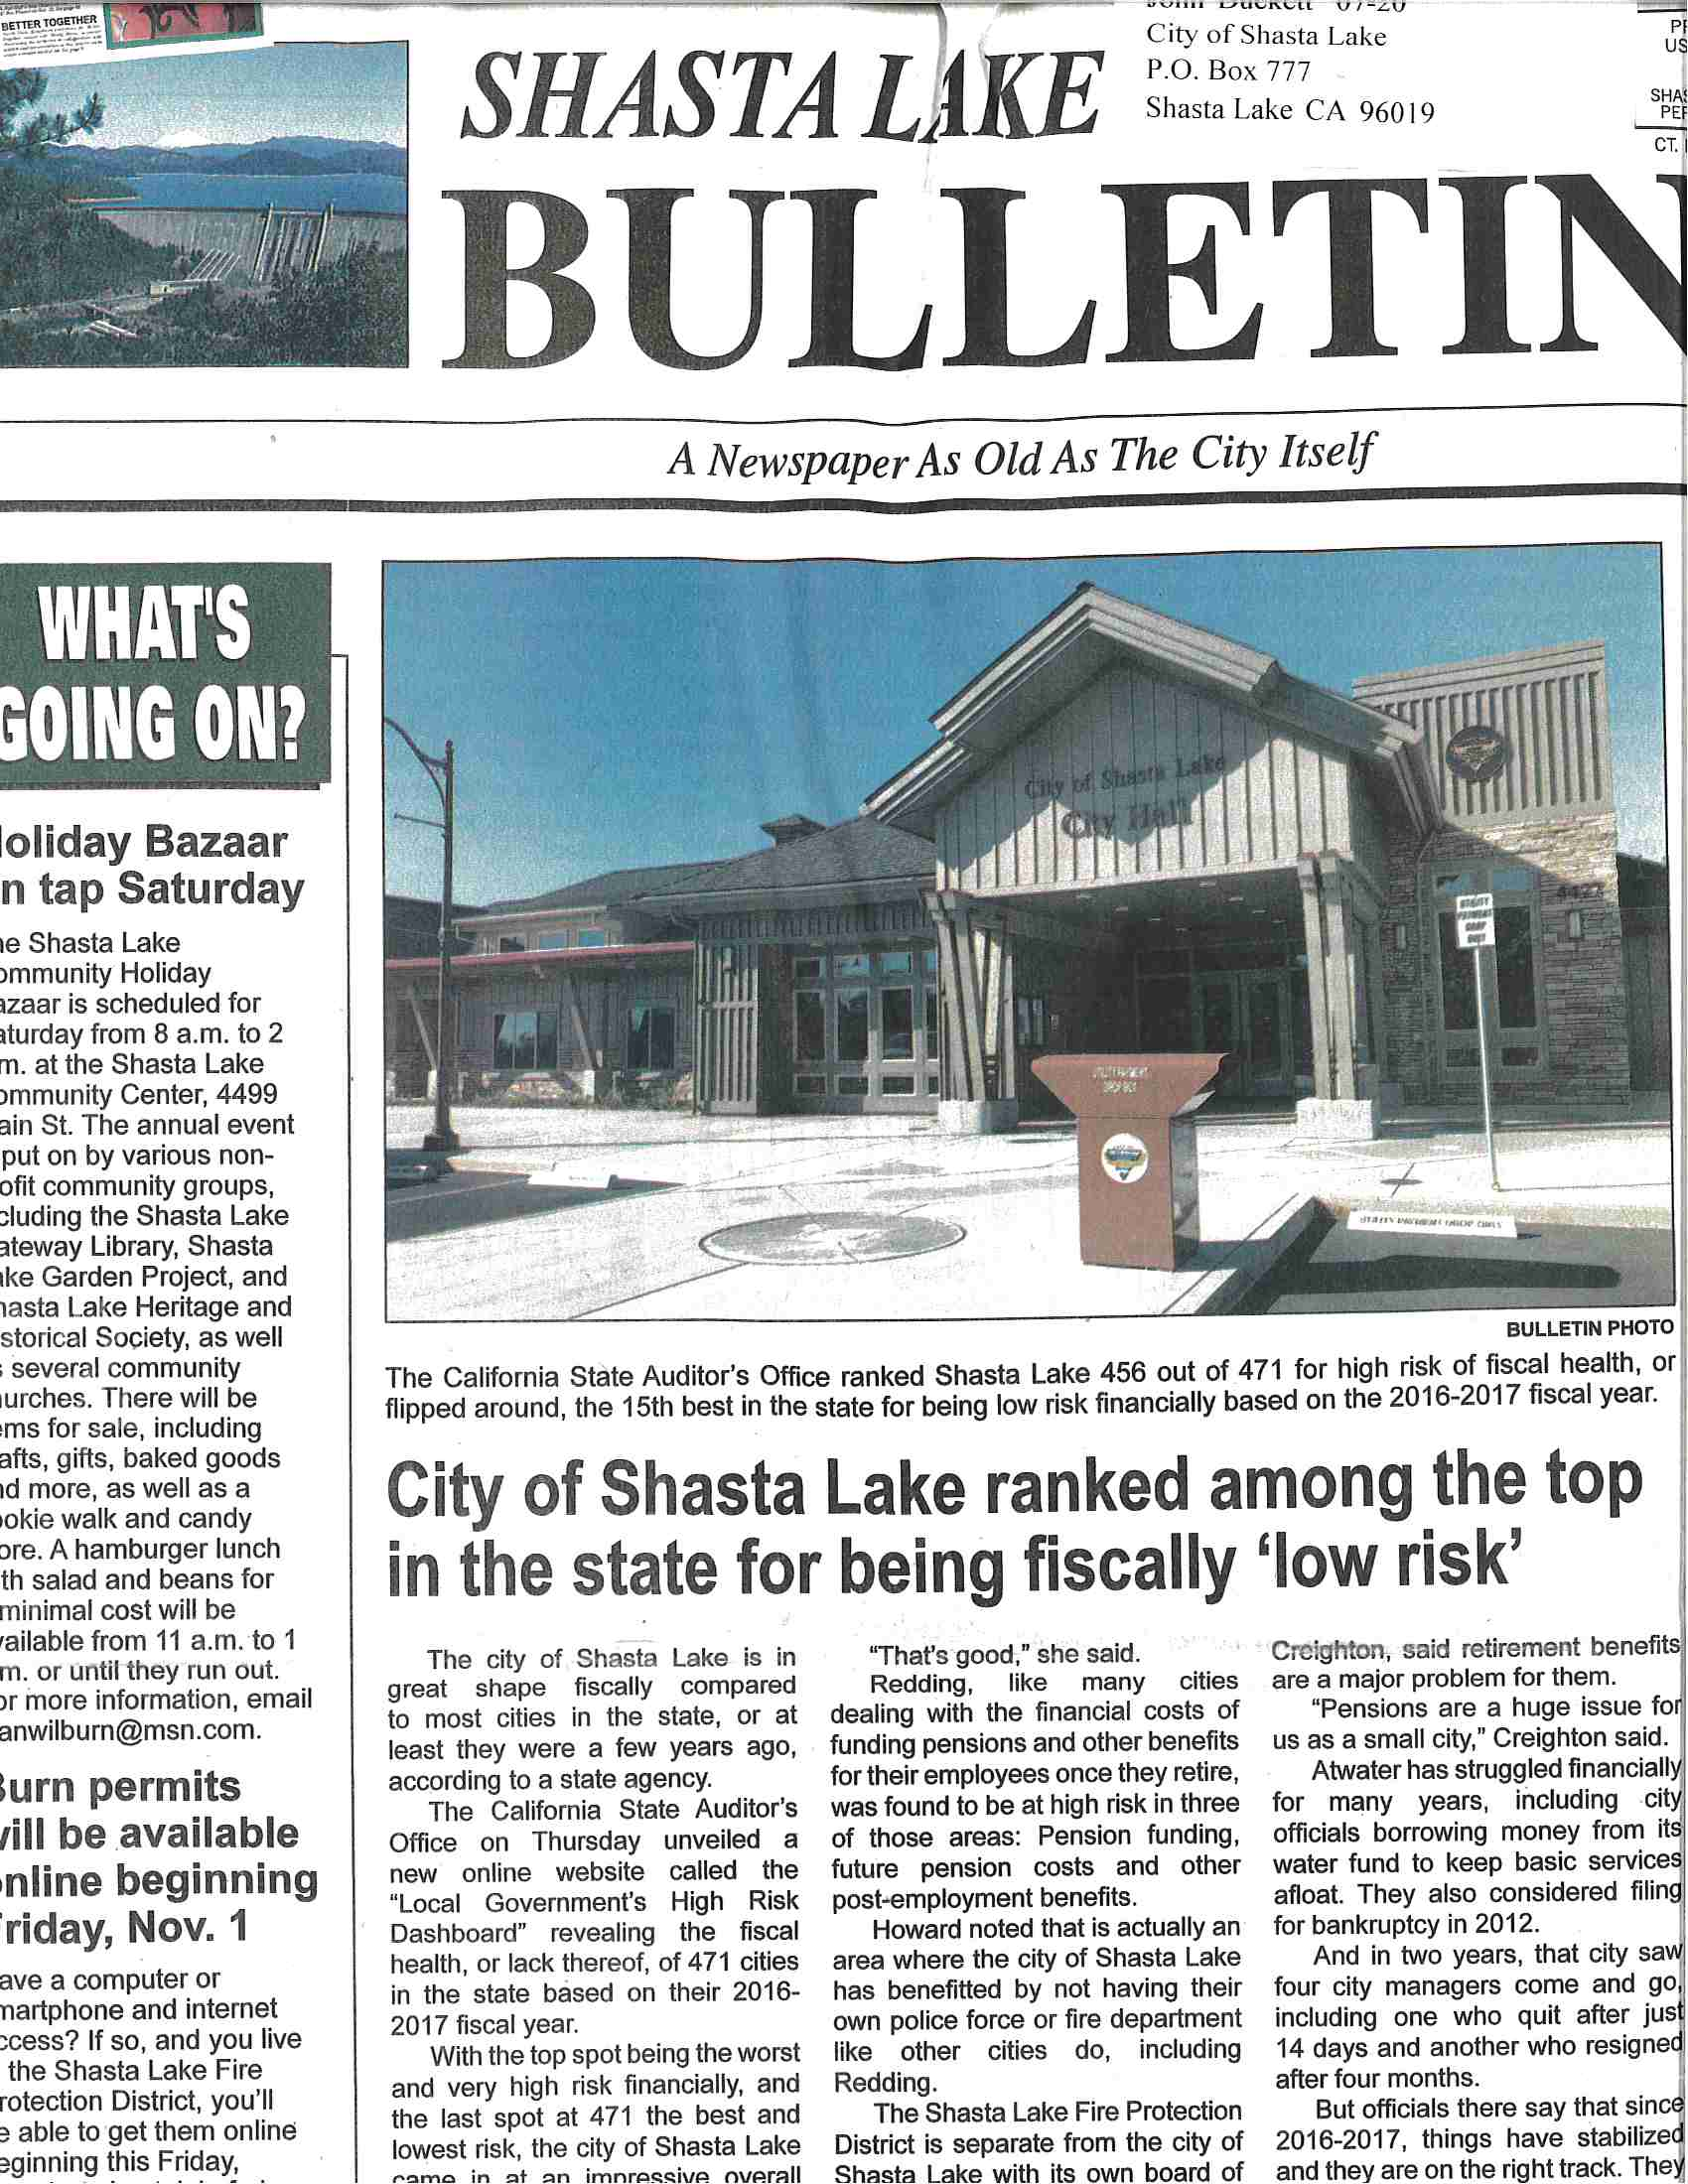 Shasta Lake Bulletin October 30, 2019 Article